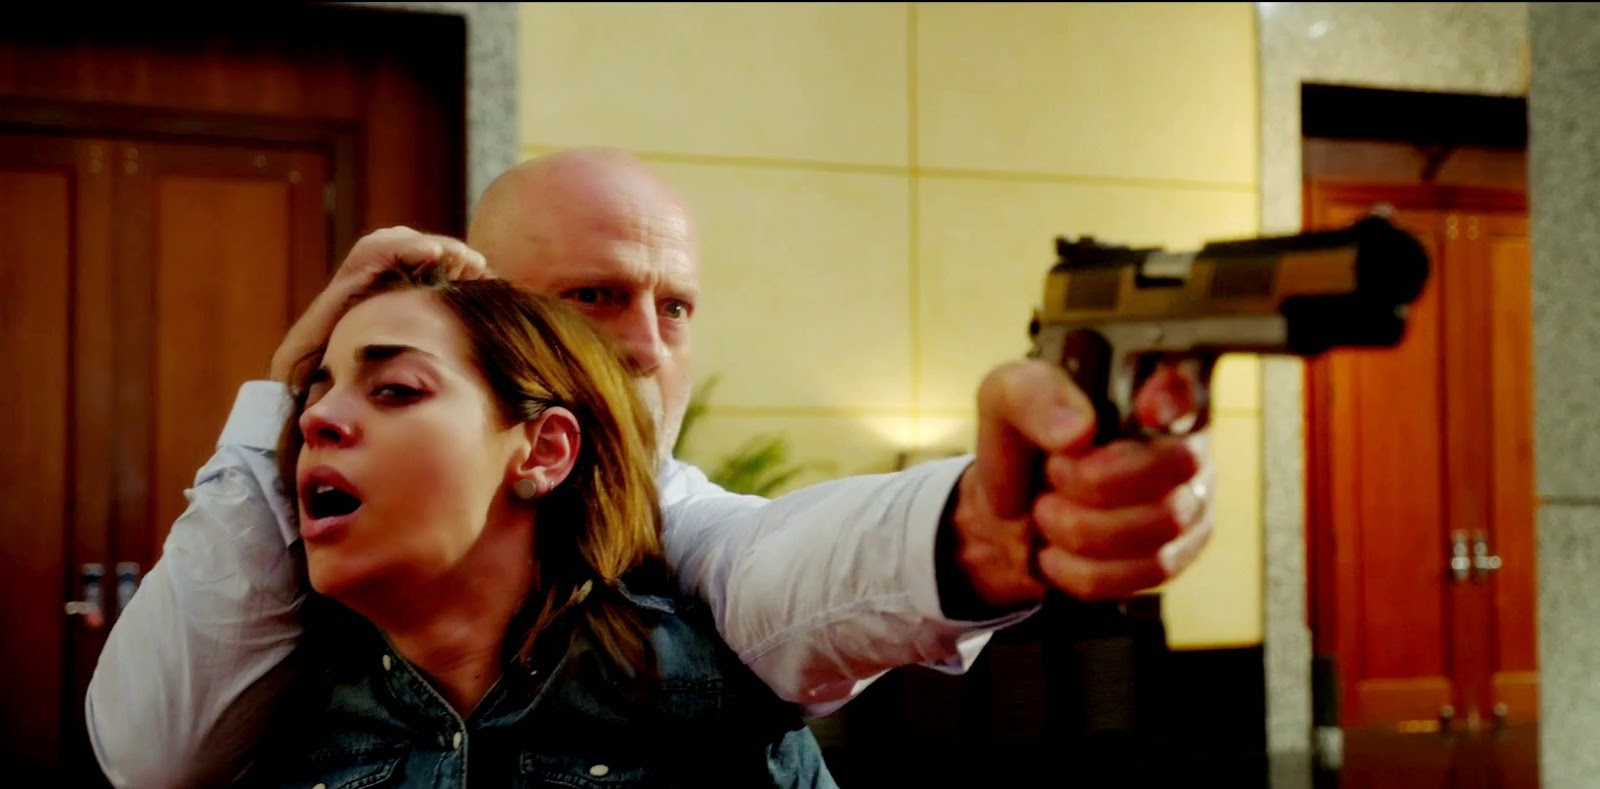 trailer-for-bruce-willis-action-thriller-the-prince